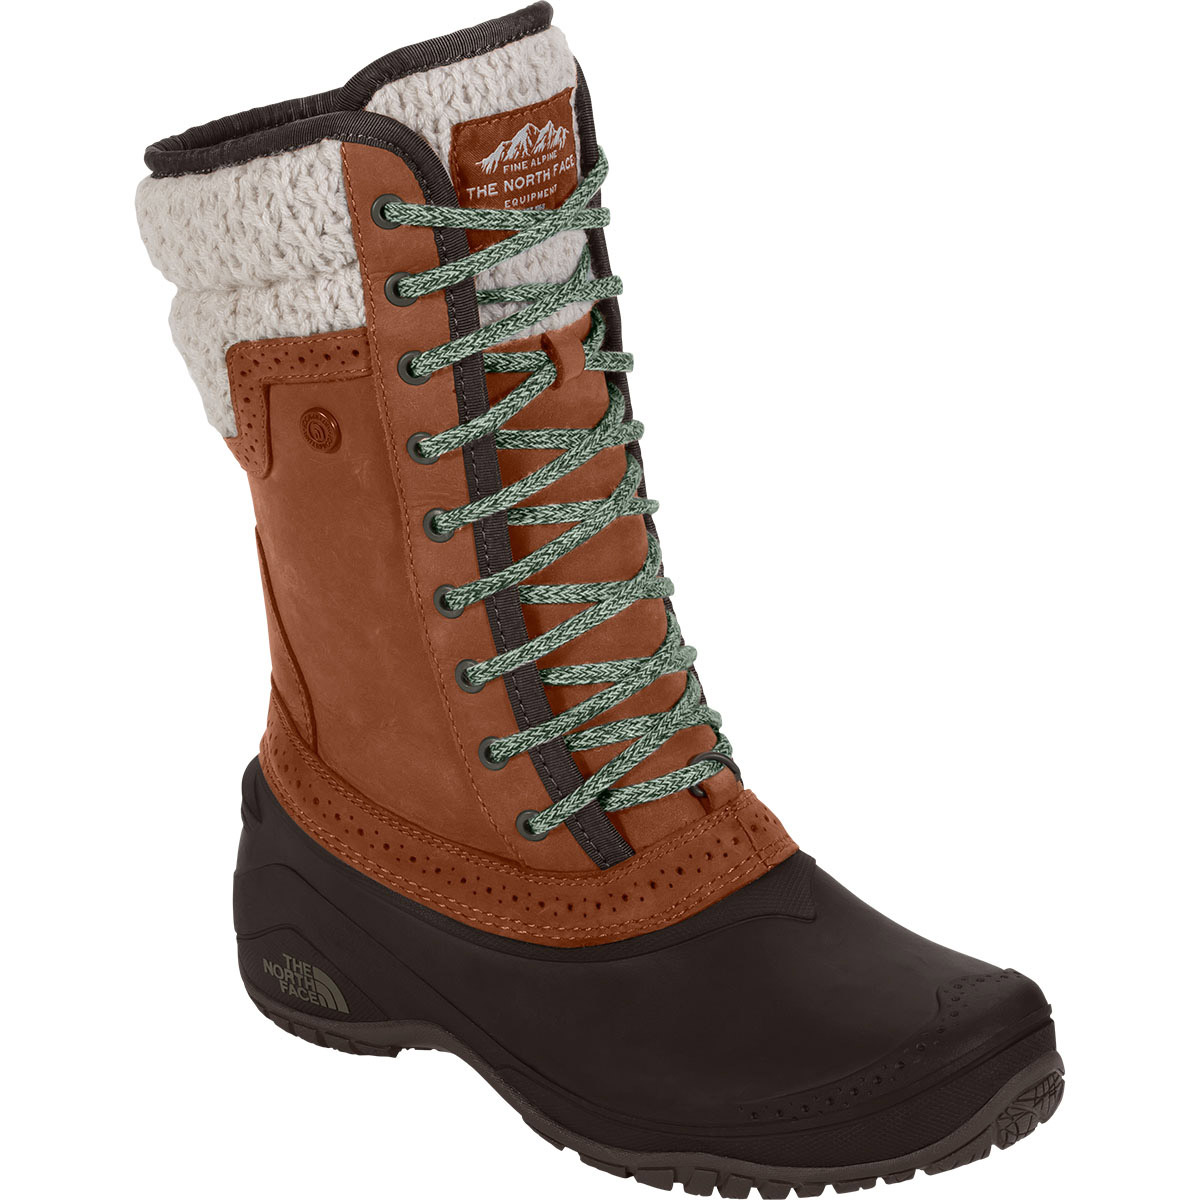 The North Face Women's Shellista Ii Mid Boots - Brown, 8.5